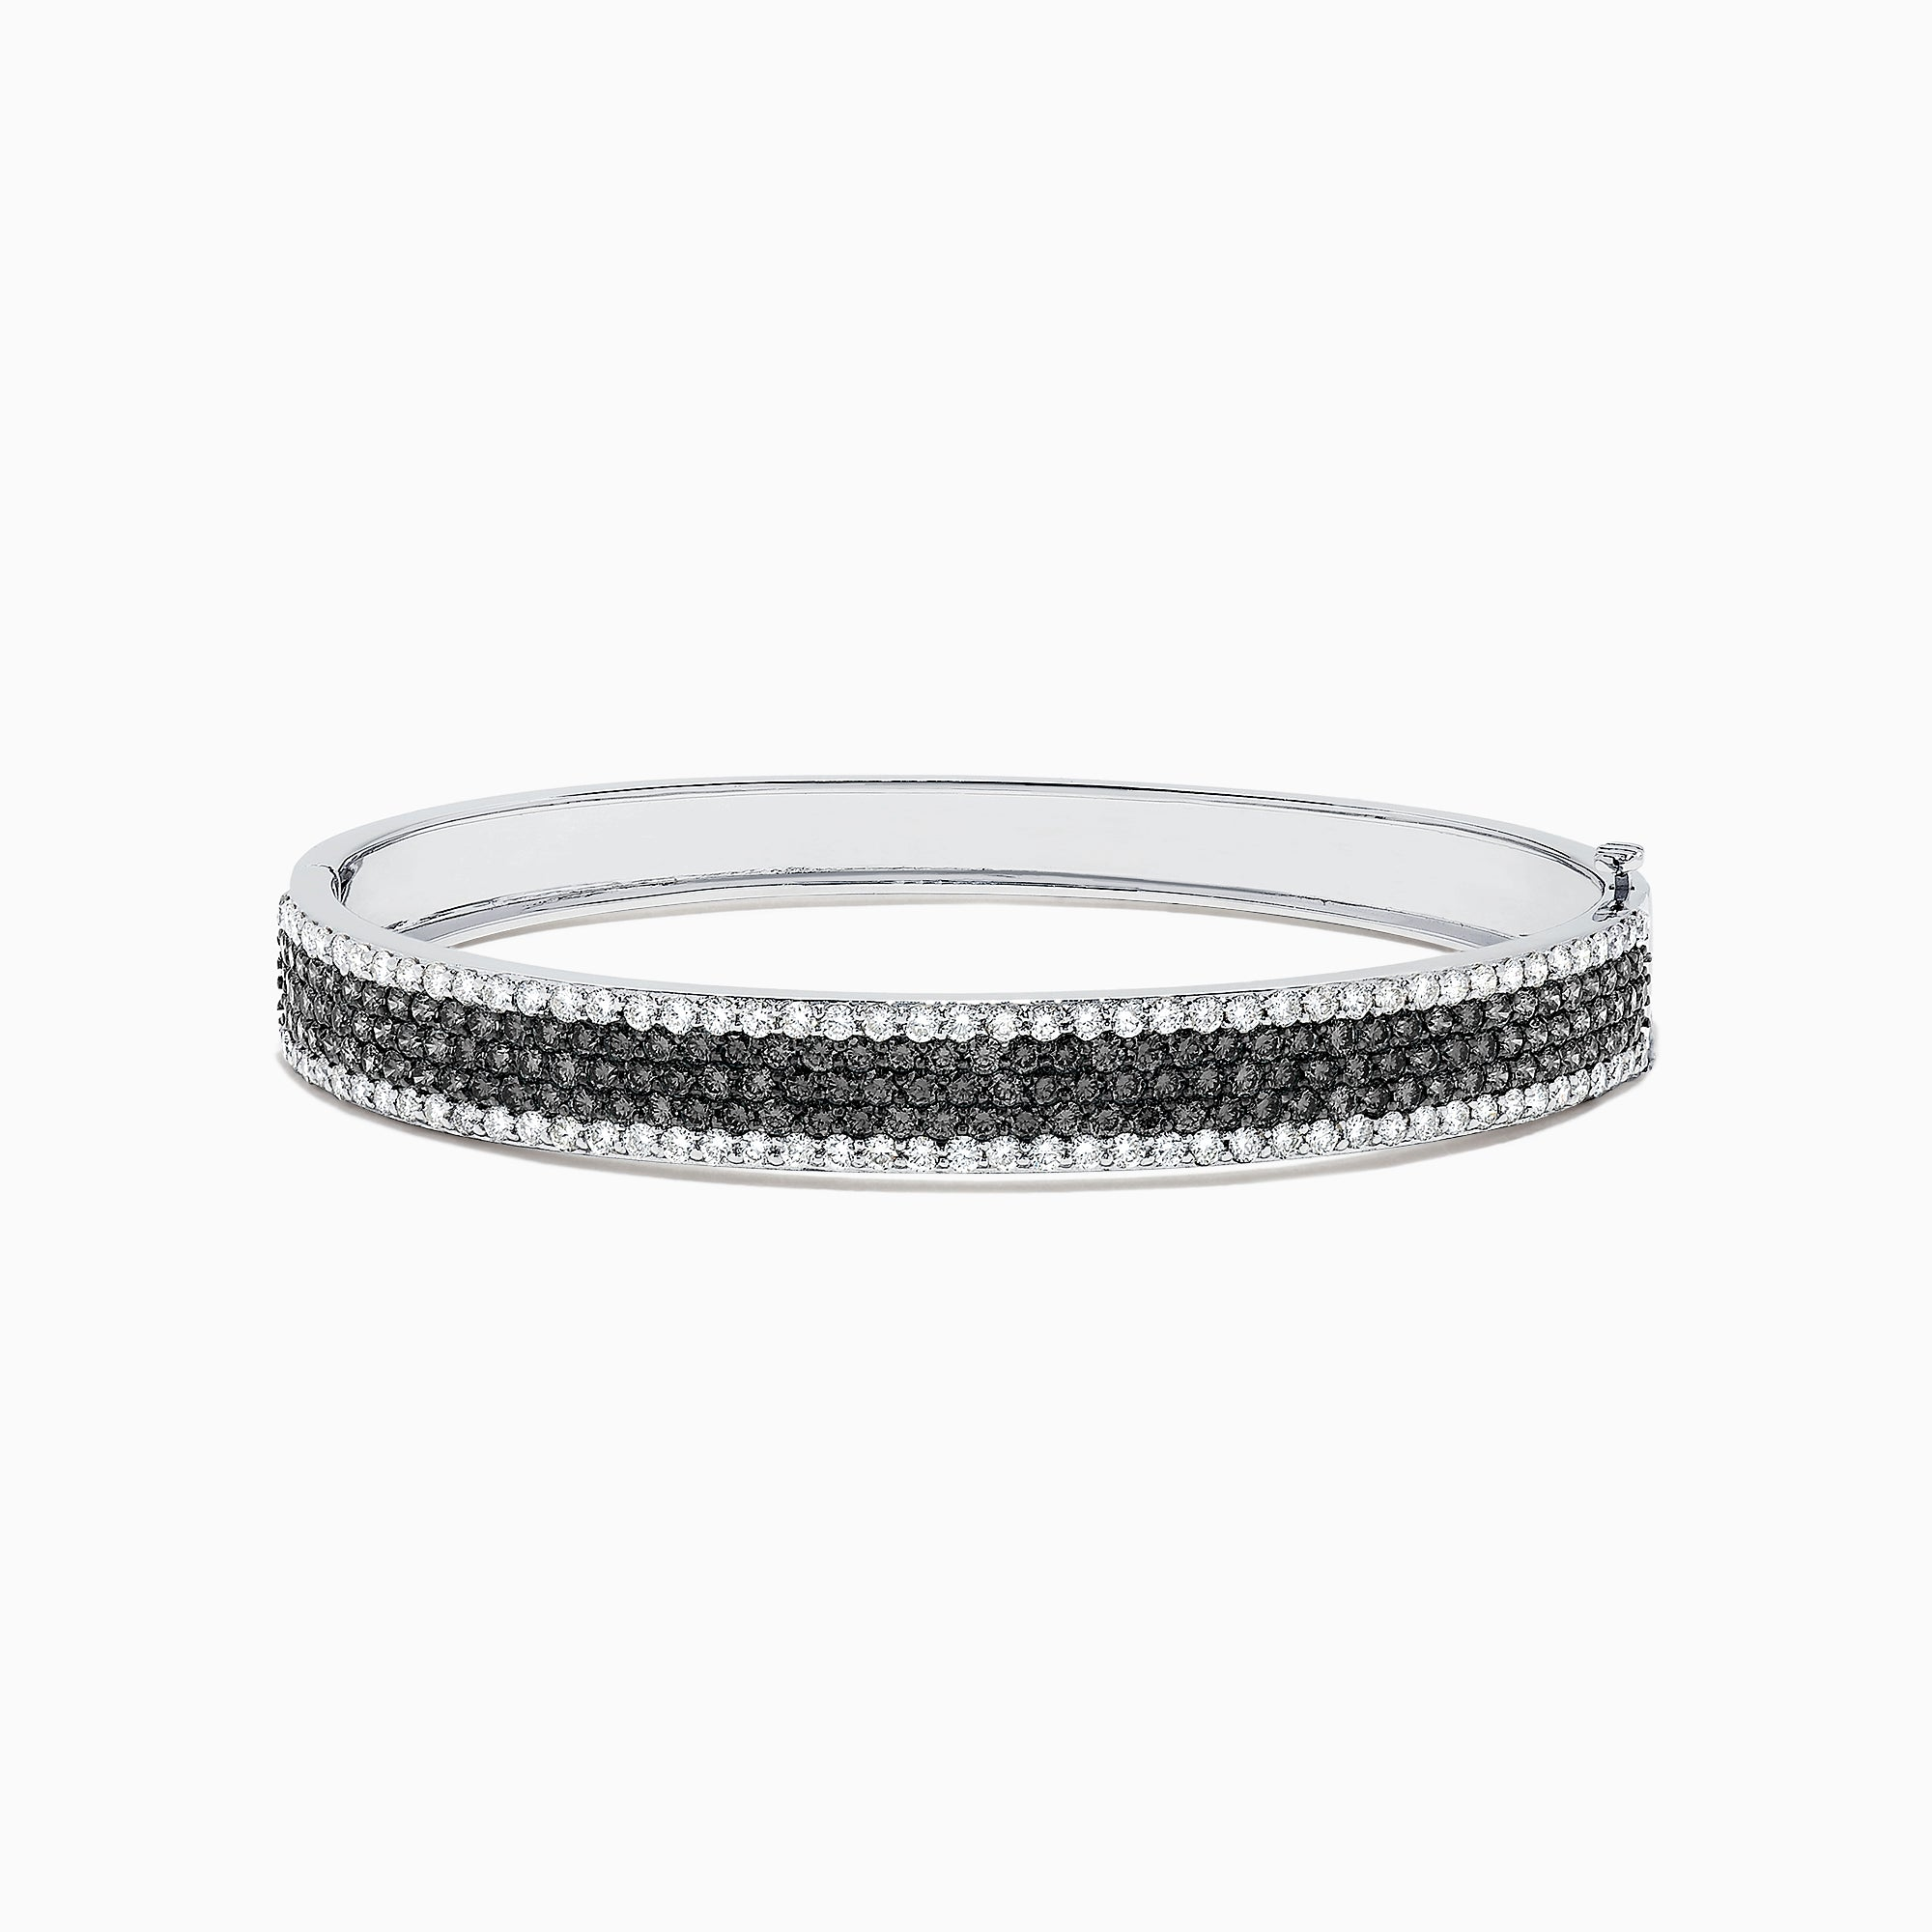 Effy 14K White Gold Black and White Diamond Bangle, 4.47 TCW